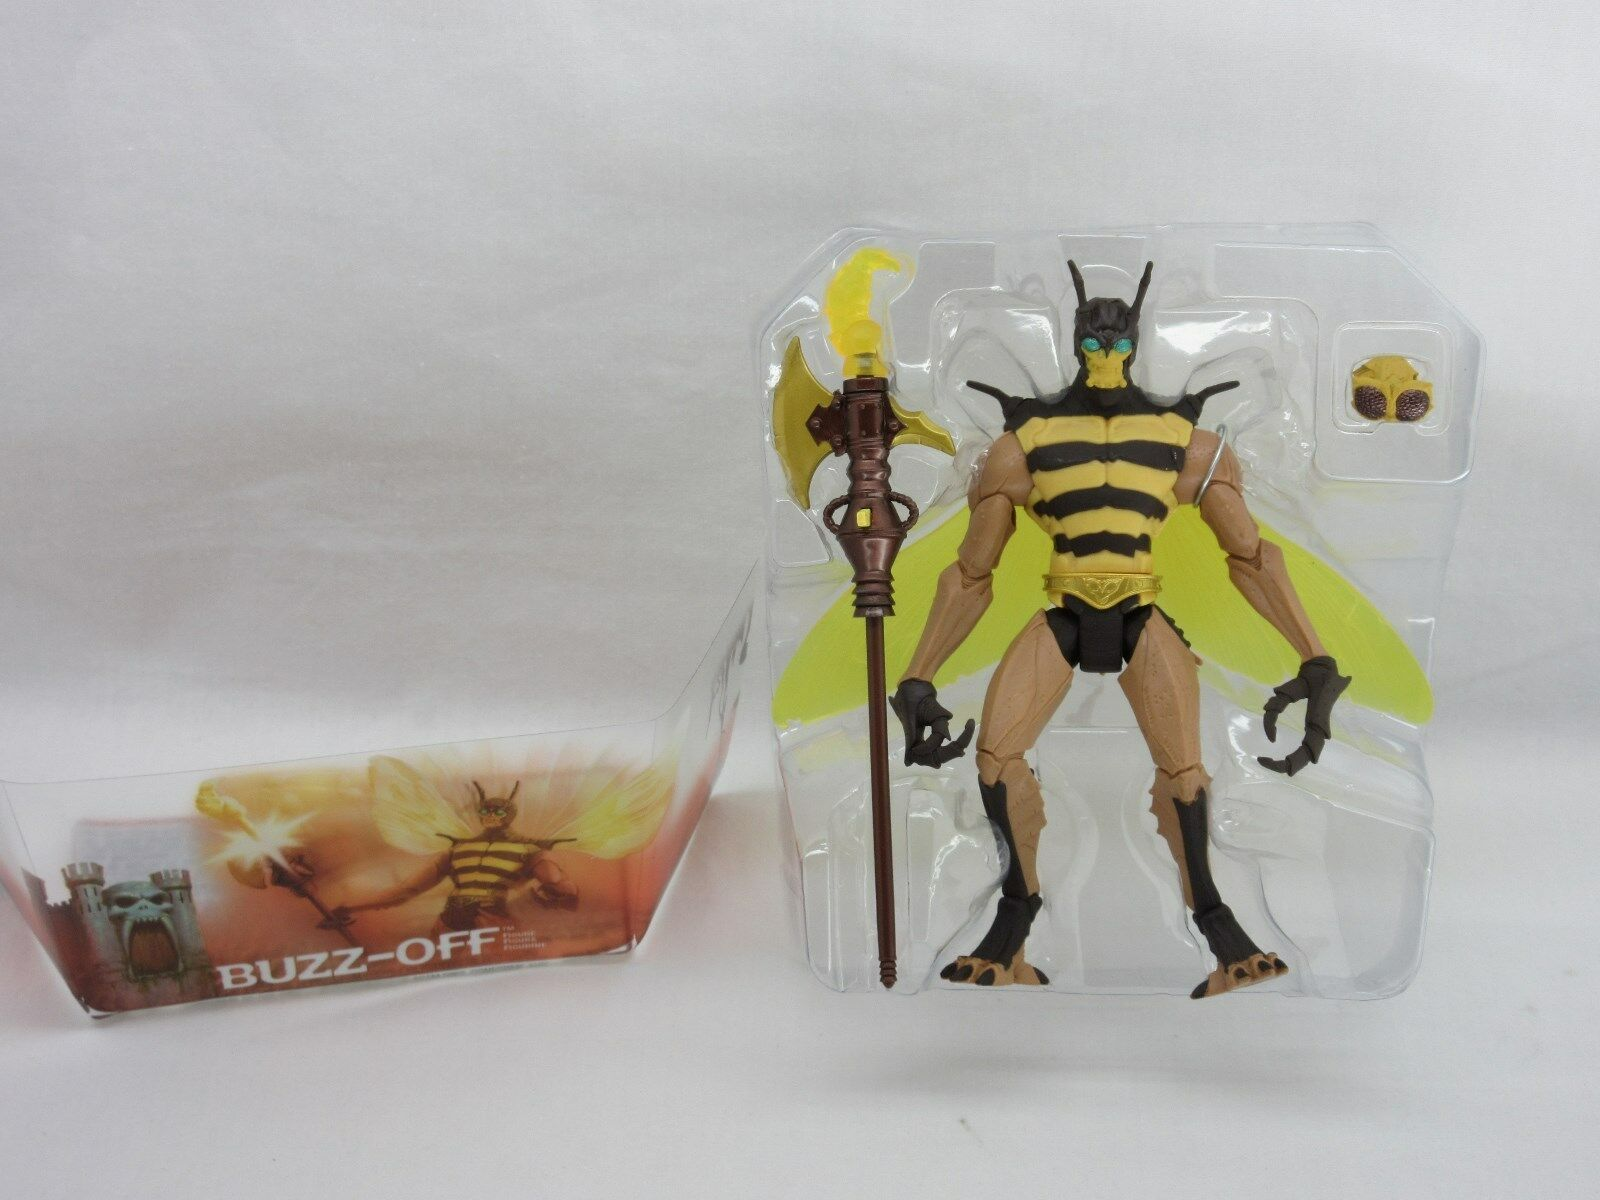 MOTU,BUZZ-OFF,200x,MINT,figure,100% complete,Masters of of of the Universe,He Man 1ff7bf